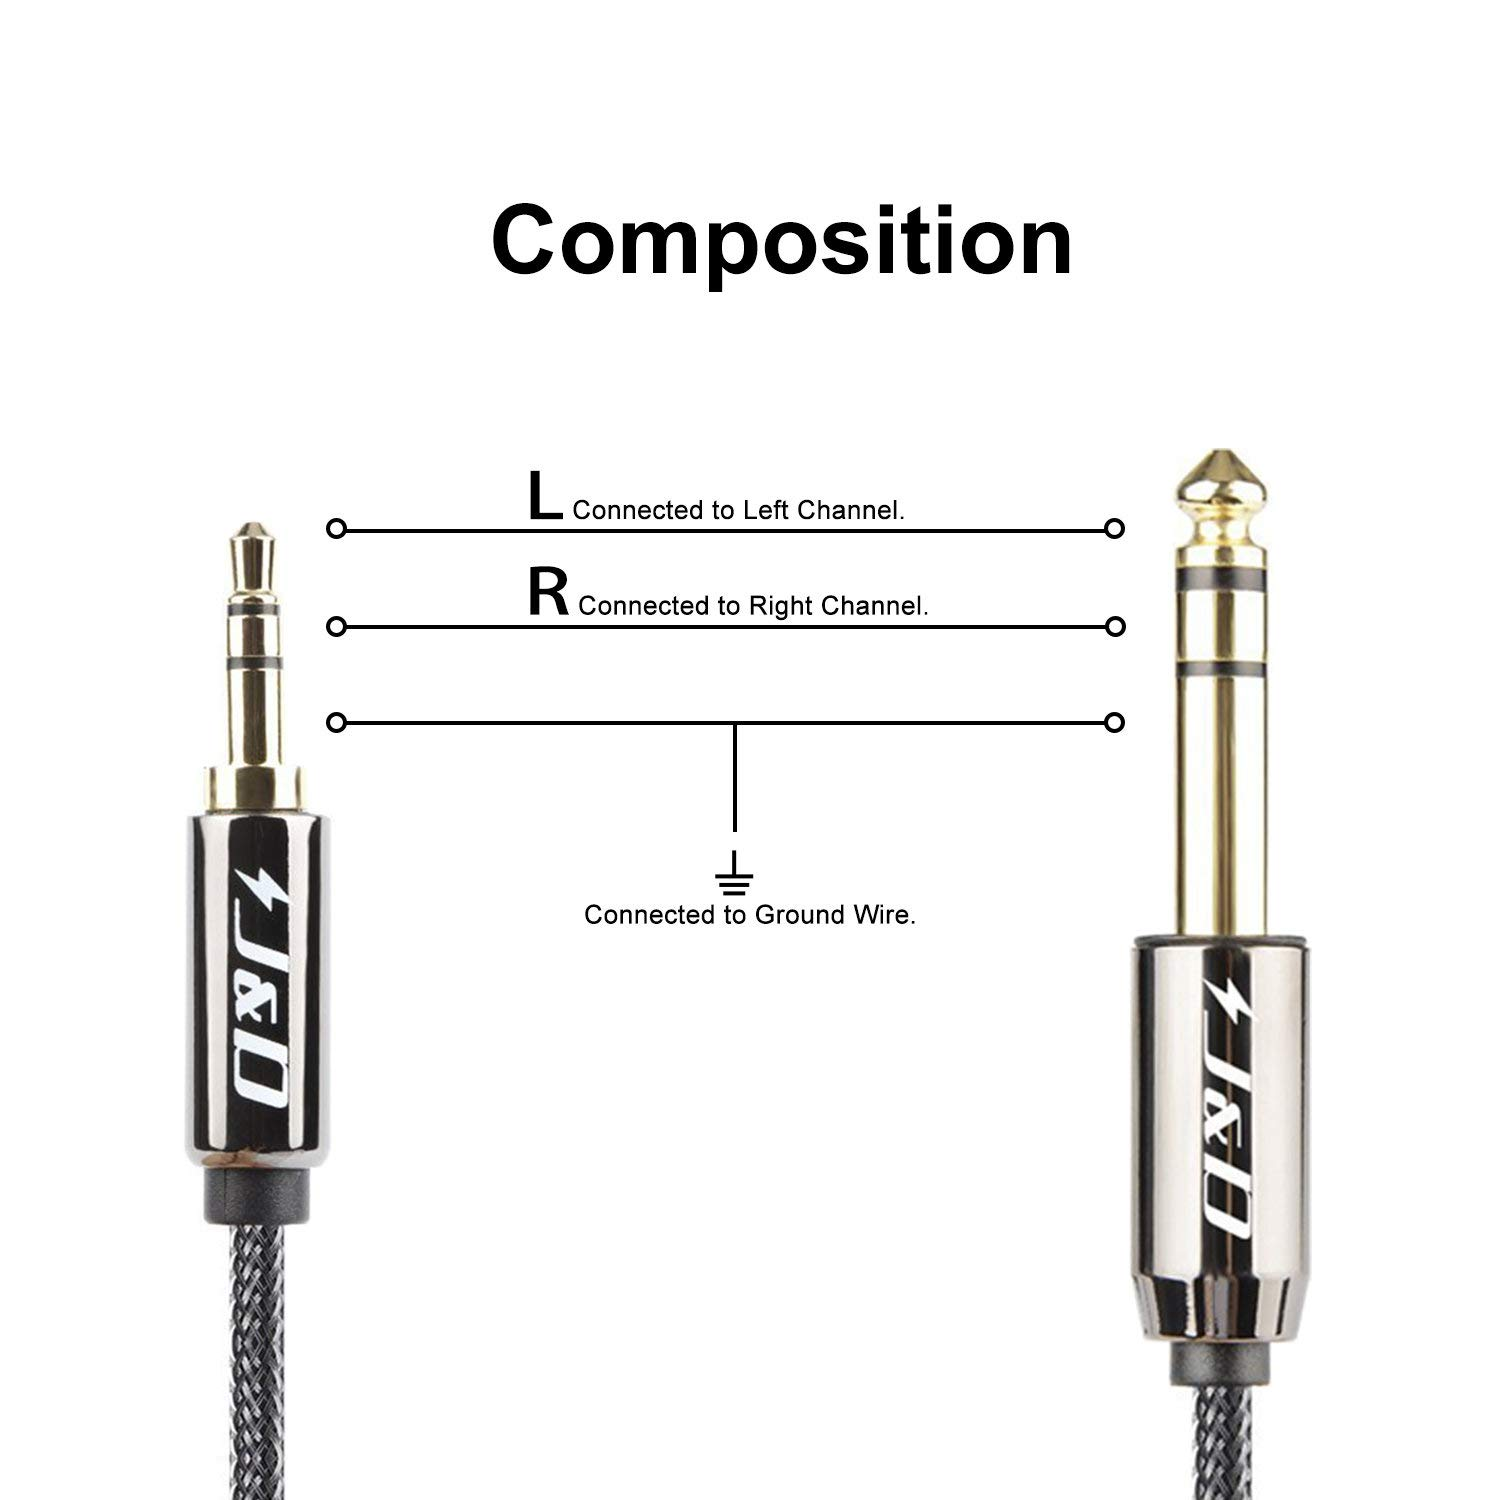 6 Feet // 1.8 Meter J/&D 3.5 mm to 6.35 mm Cable Gold-Plated 3.5mm 1//8 Male TRS to 6.35mm 1//4 Male TRS Stereo Audio Cable with Zinc Alloy Housing and Nylon Braid Heavy Duty Copper Shell